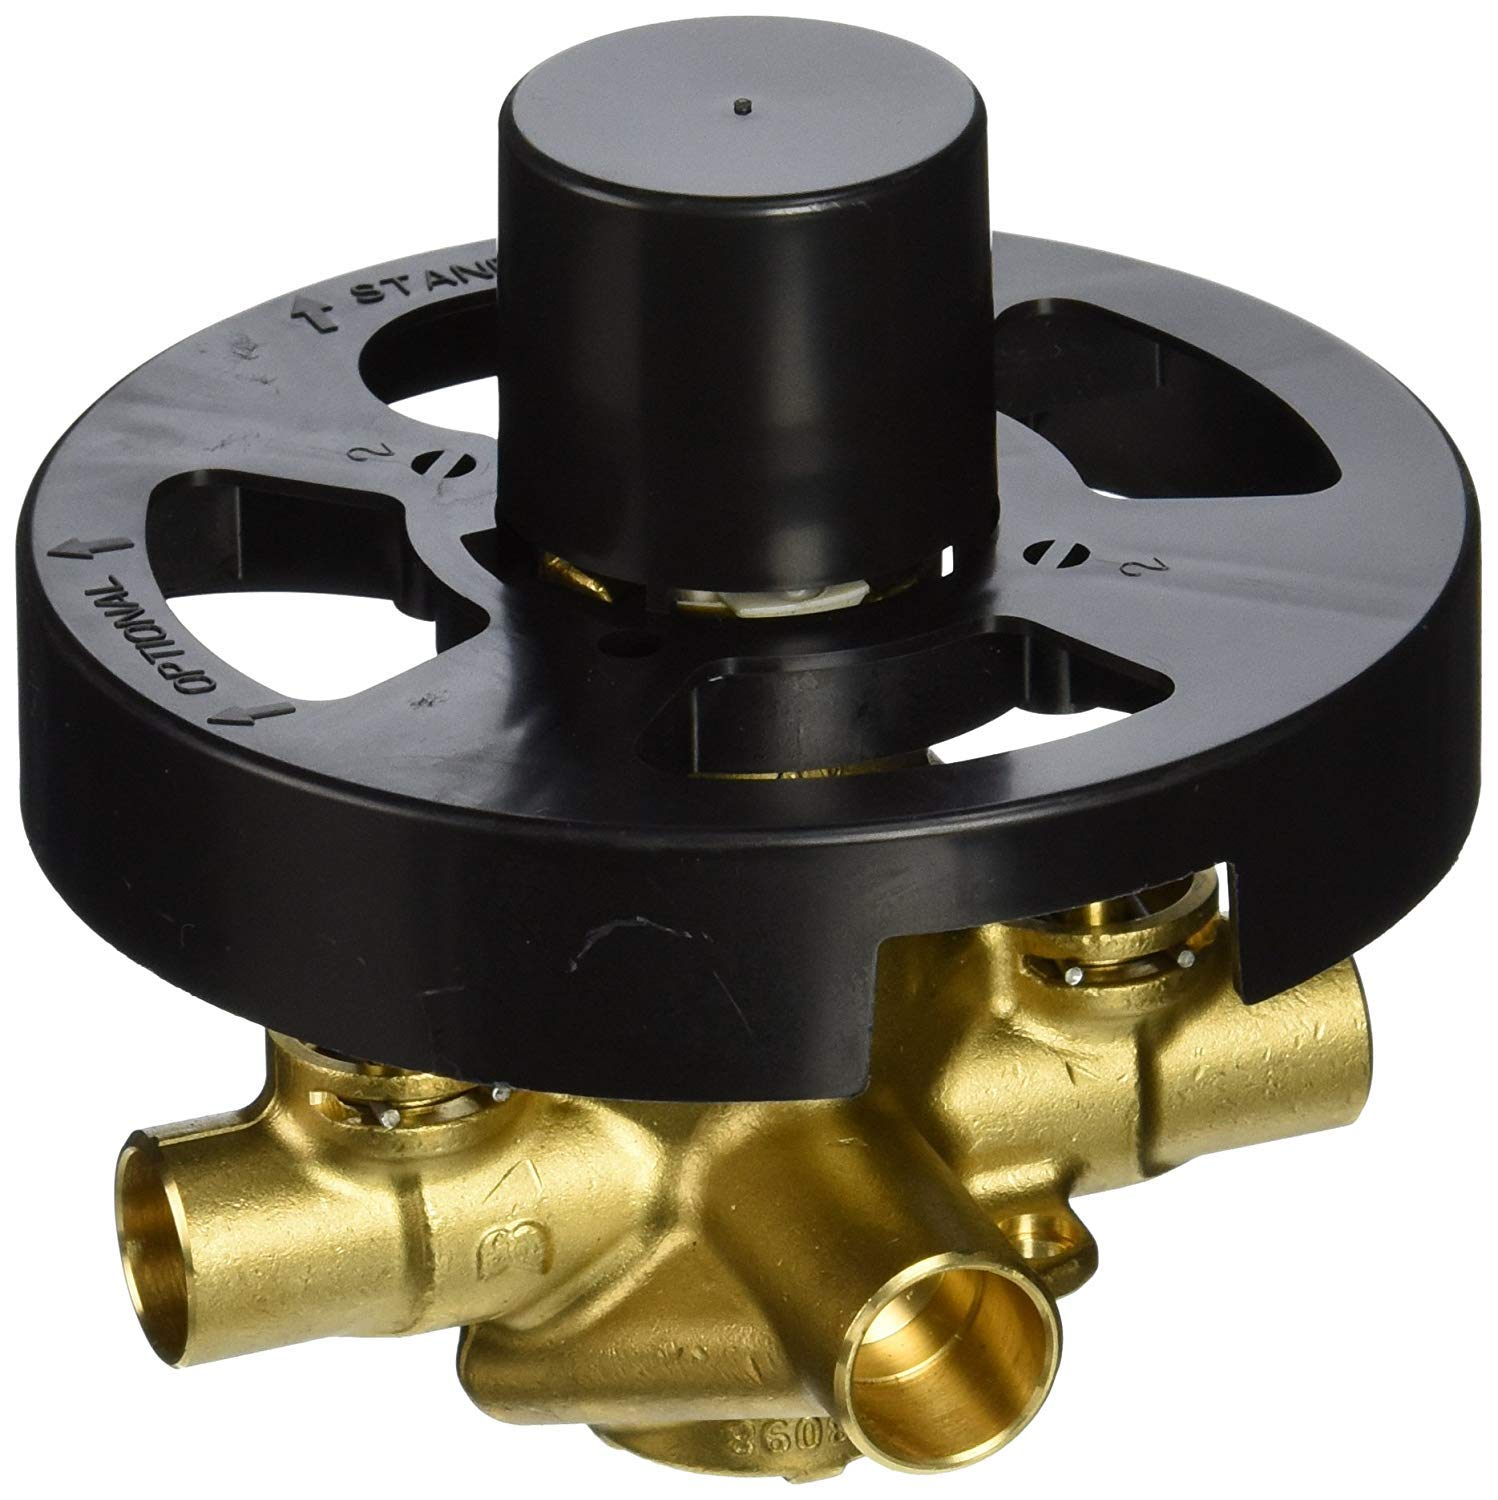 Moen 2570 Rough-in Posi-Temp Pressure Balancing Cycling Valve with Stops